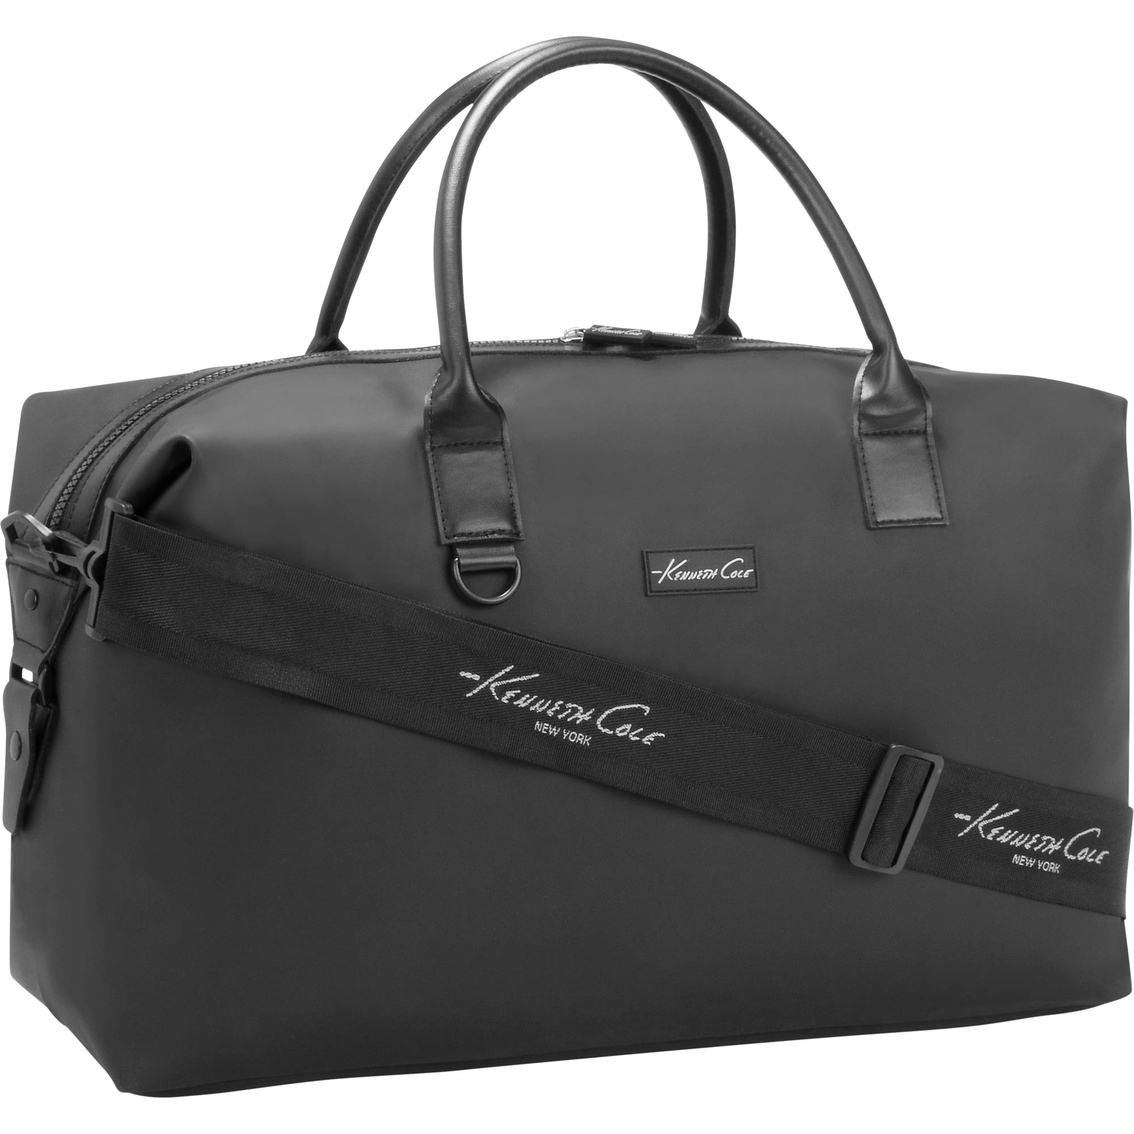 Kenneth Cole Gift With Purchase Gwp Duffel Bag